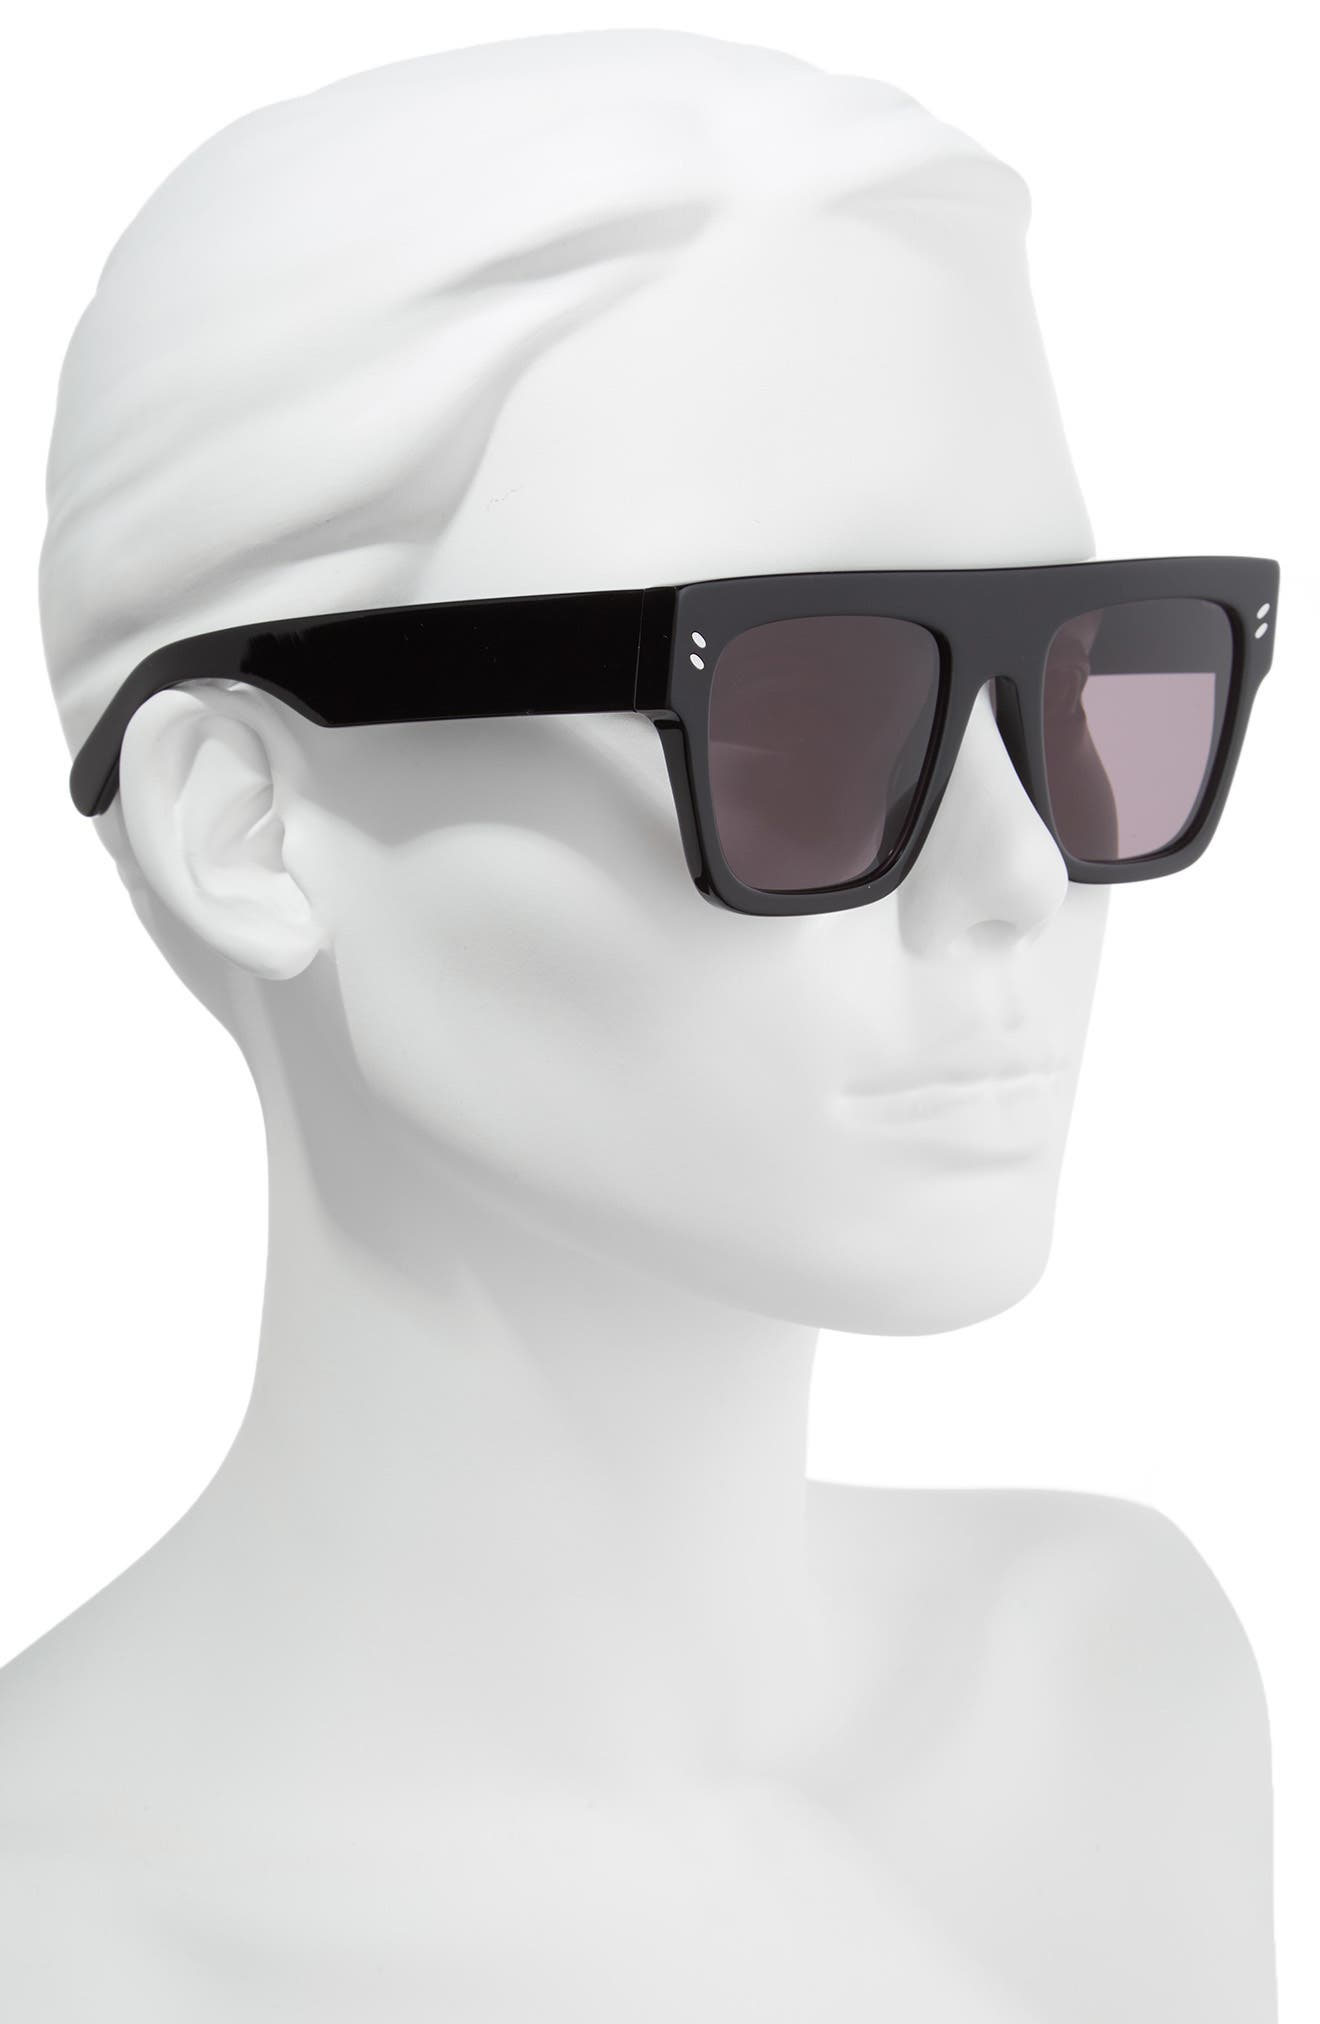 51mm Flattop Sunglasses,                             Alternate thumbnail 2, color,                             BLACK